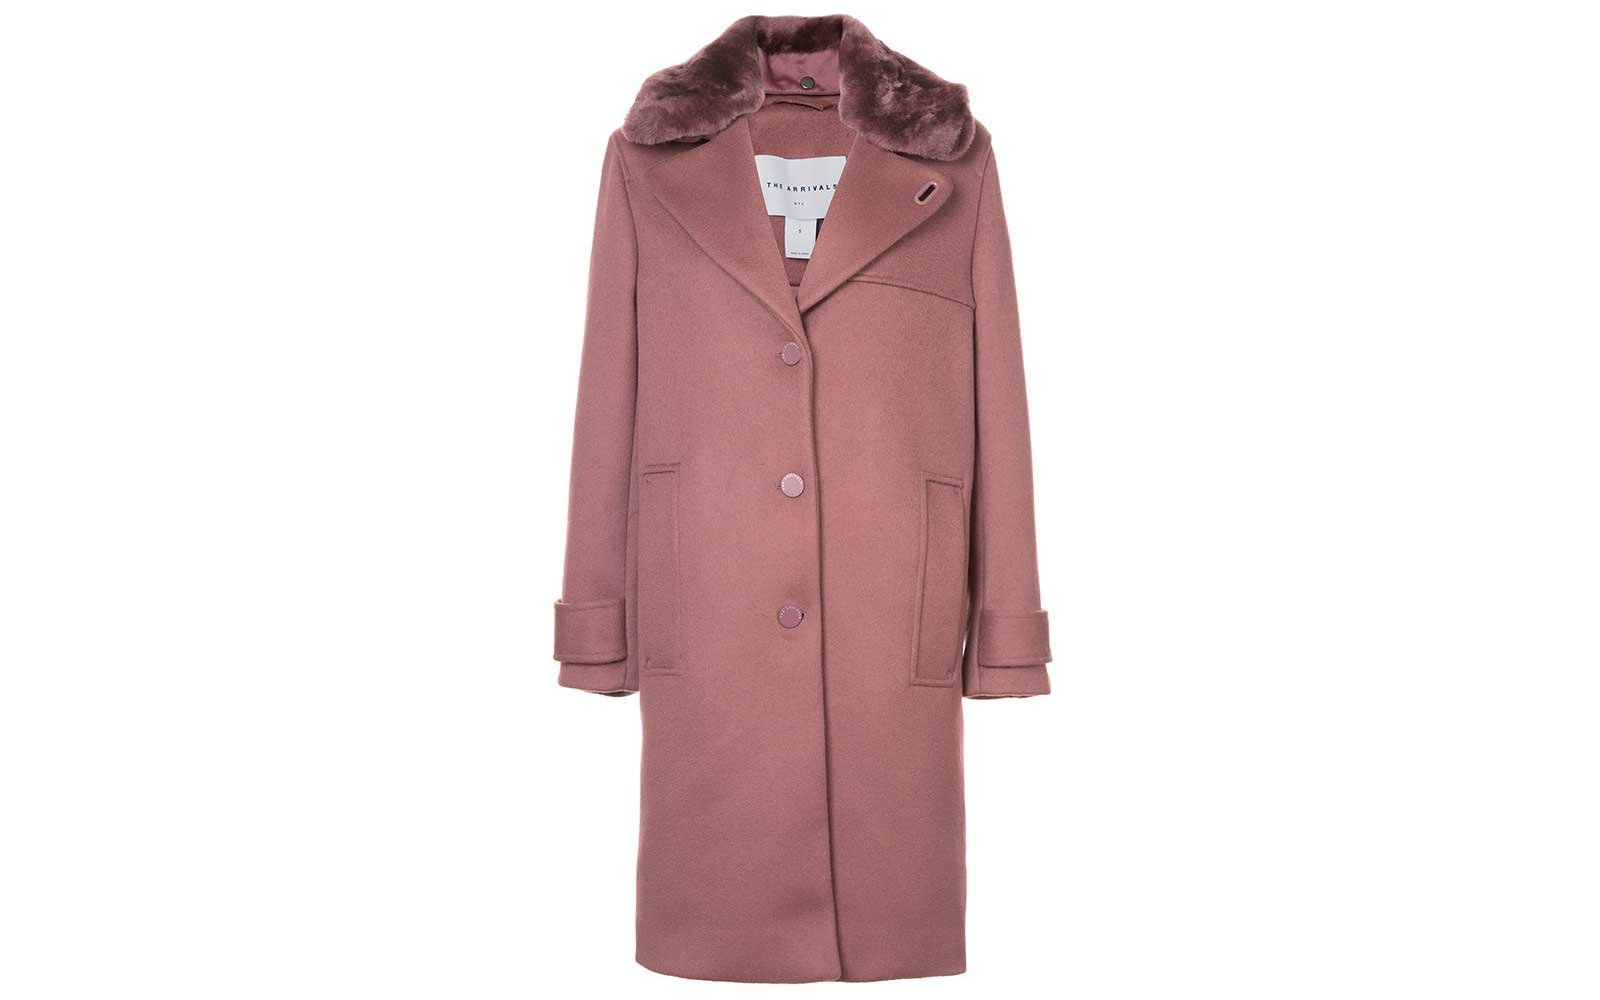 Rose colored coat from The Arrivals